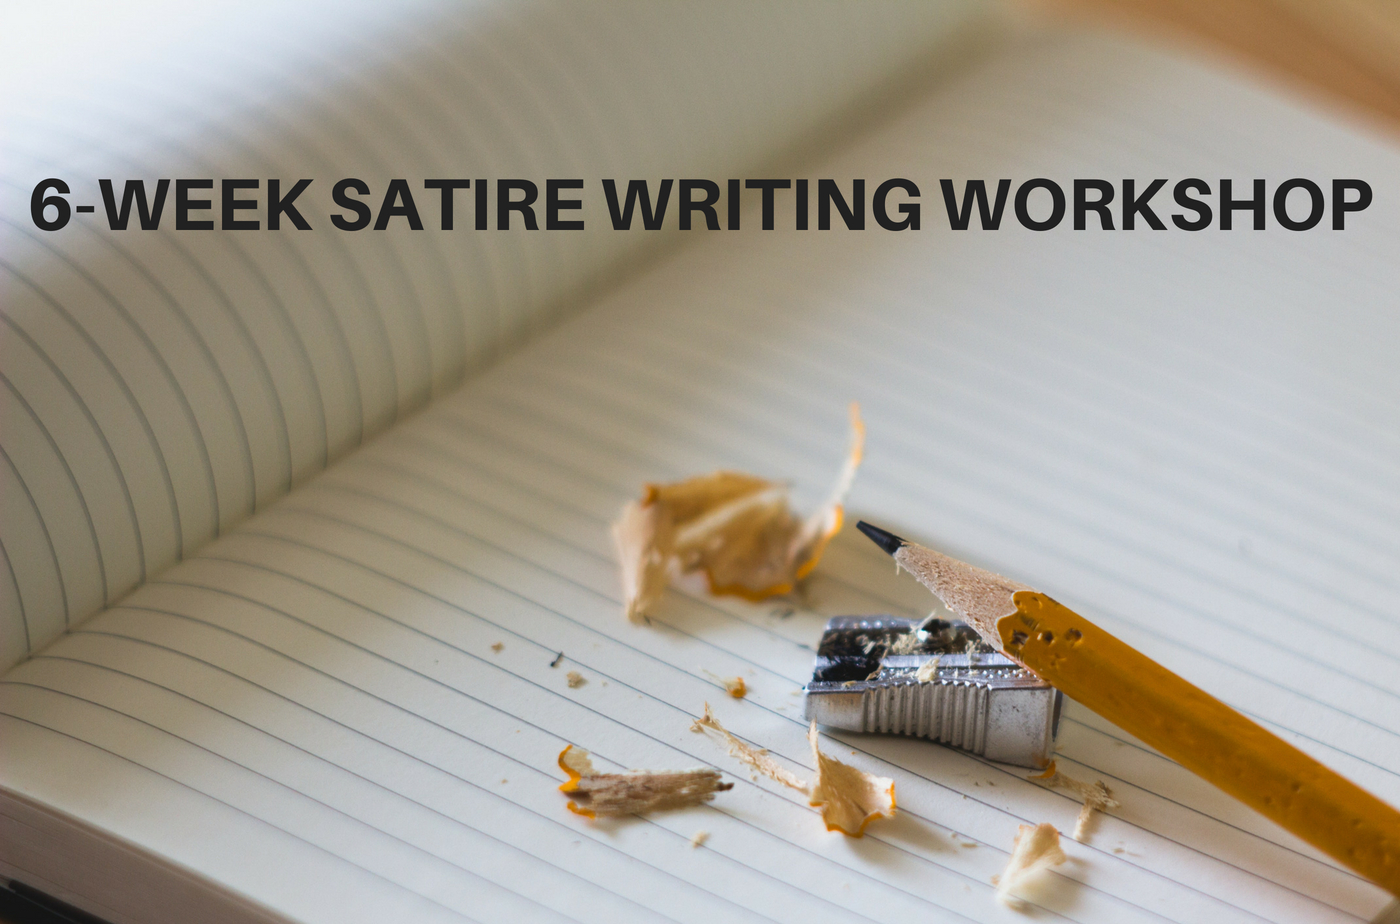 Catapult  classes: Jean-Luc Bouchard, 6-Week Satire Writing Workshop, Comedy, Workshop